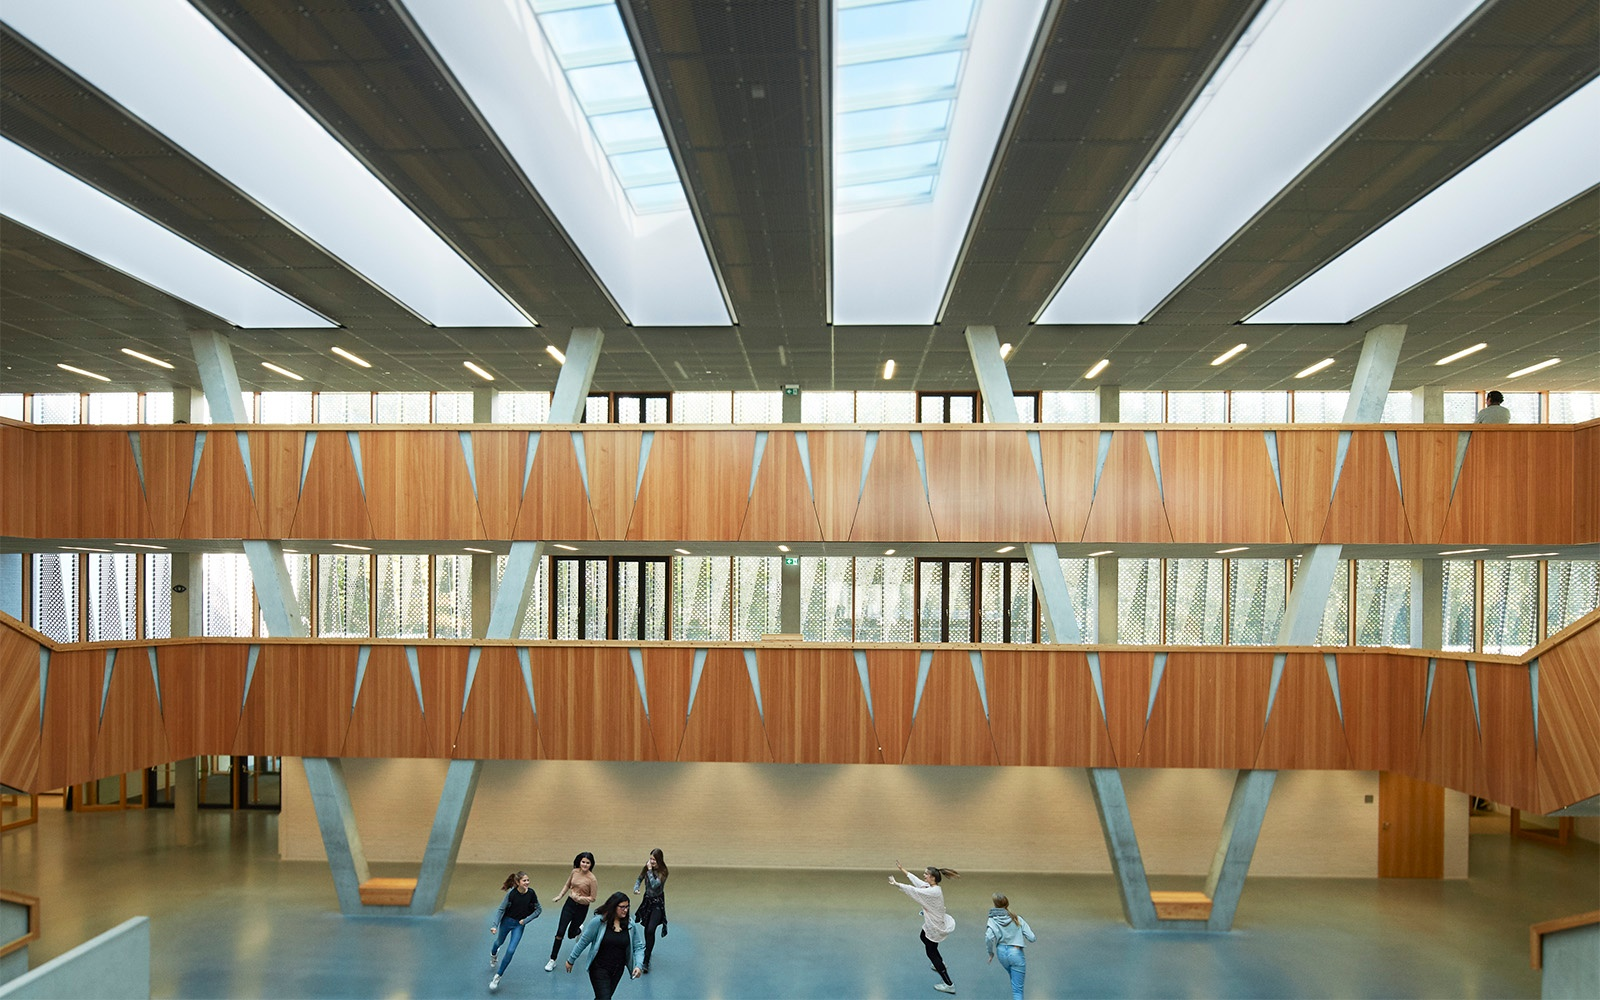 Open architectural school design with skylights for ventilation and natural lighting